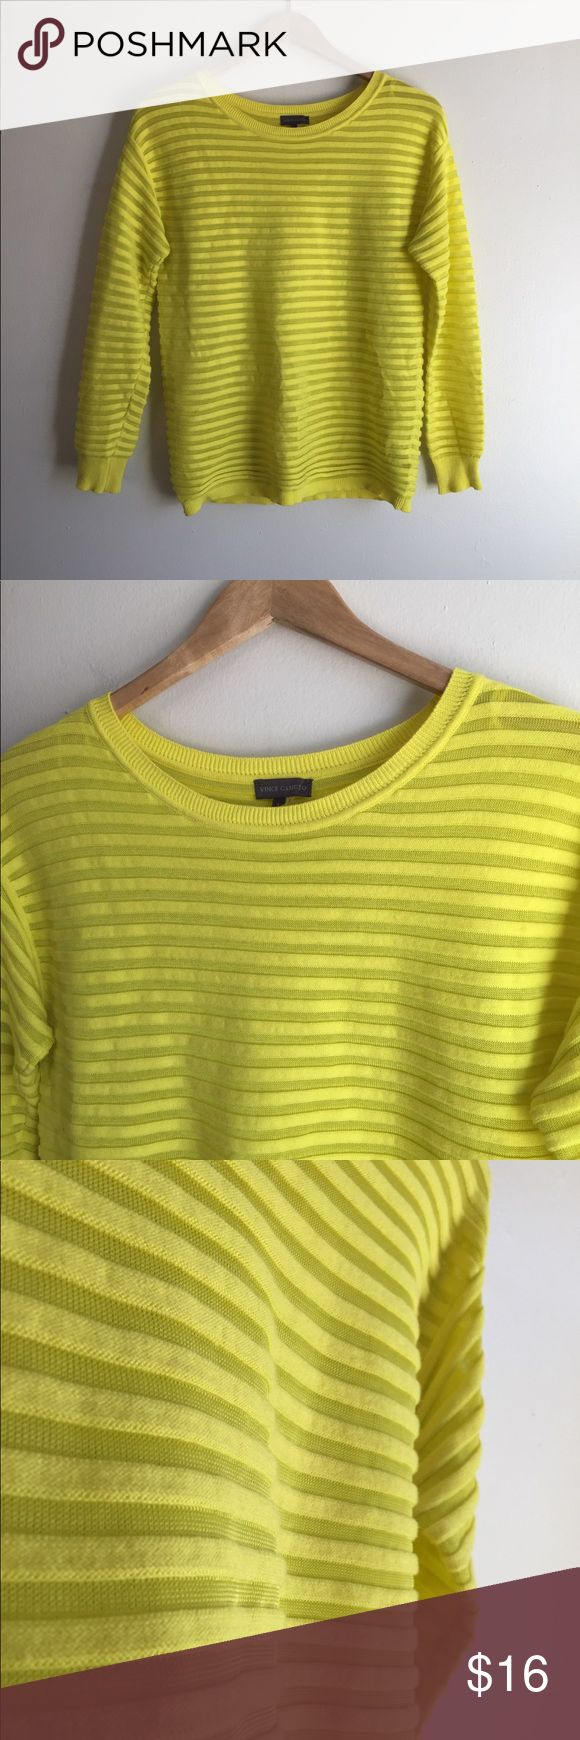 Vince Camuto ribbed Sweater Bright yellow almost neon color sweater with horizontal ribbed fabric. Made with 100% cotton. Perfect condition Vince Camuto Sweaters Crew & Scoop Necks